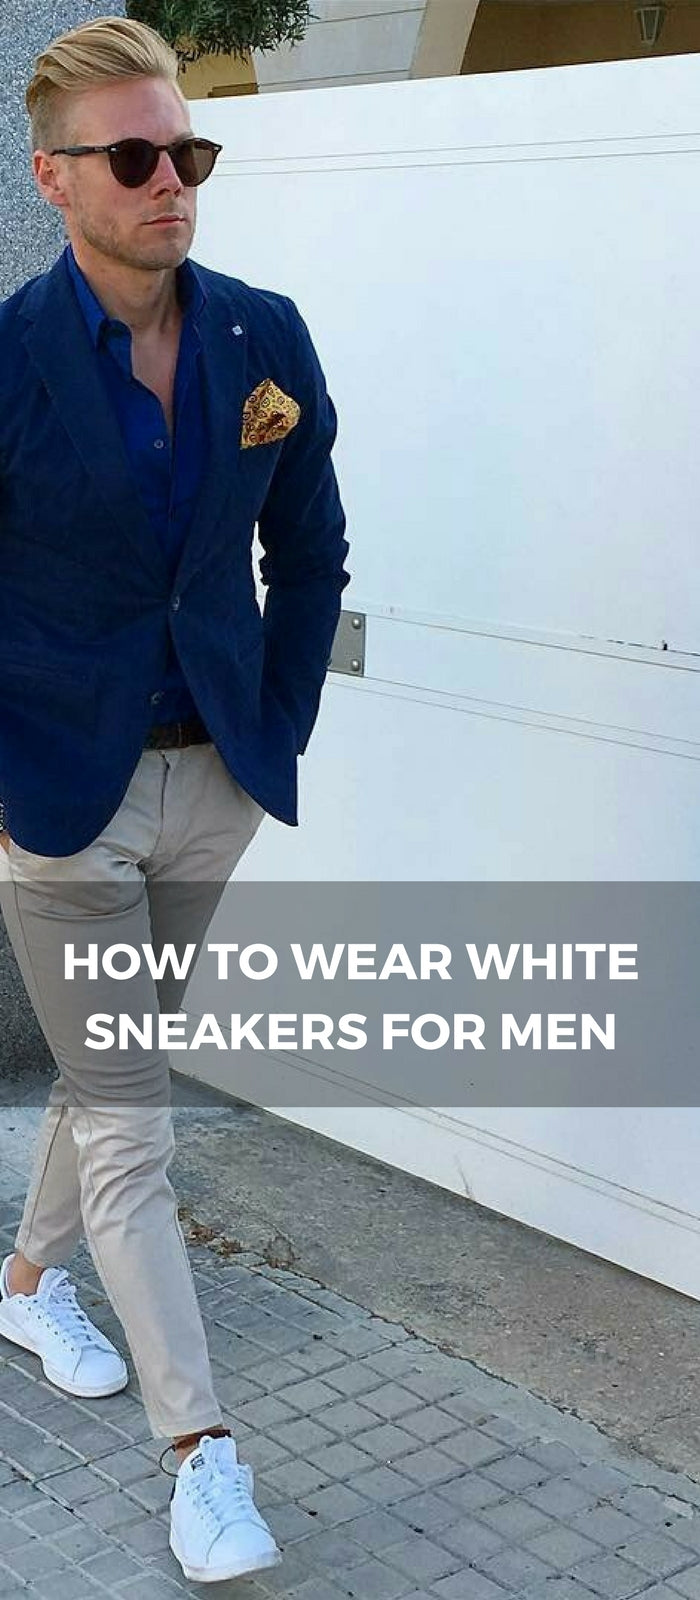 How to dress up white sneakers for men